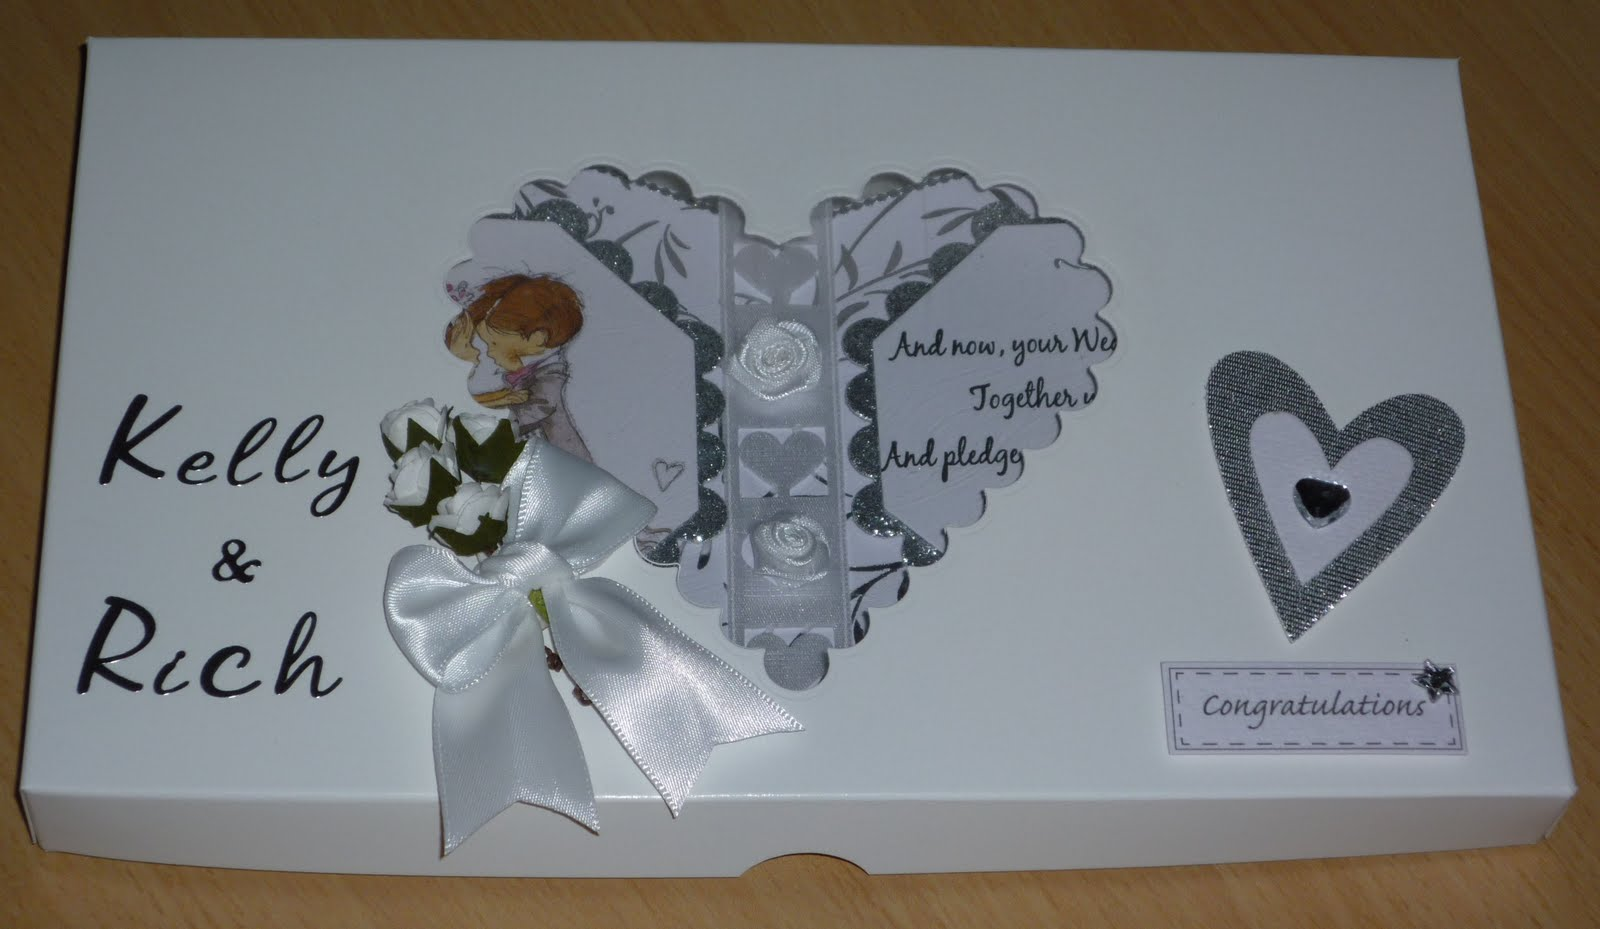 wedding card creative design, creative wedding cards design